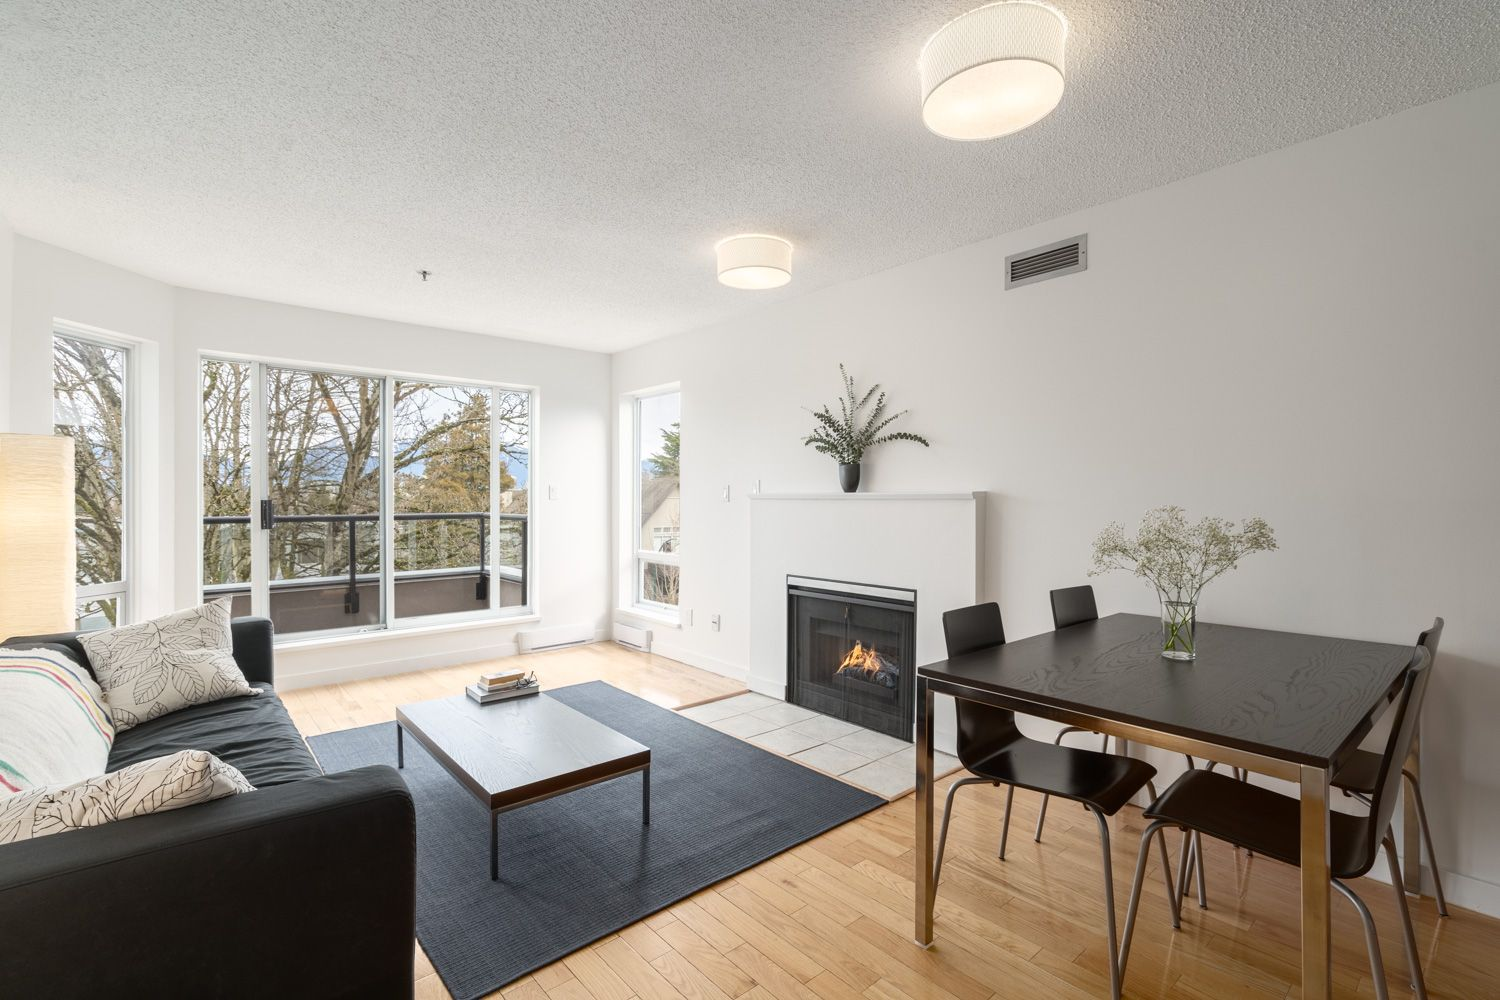 Kitsilano  Apartment for sale: 1988 Maple 2 bedroom  Stainless Steel Appliances 819 sq.ft. (Listed 2020-08-28)